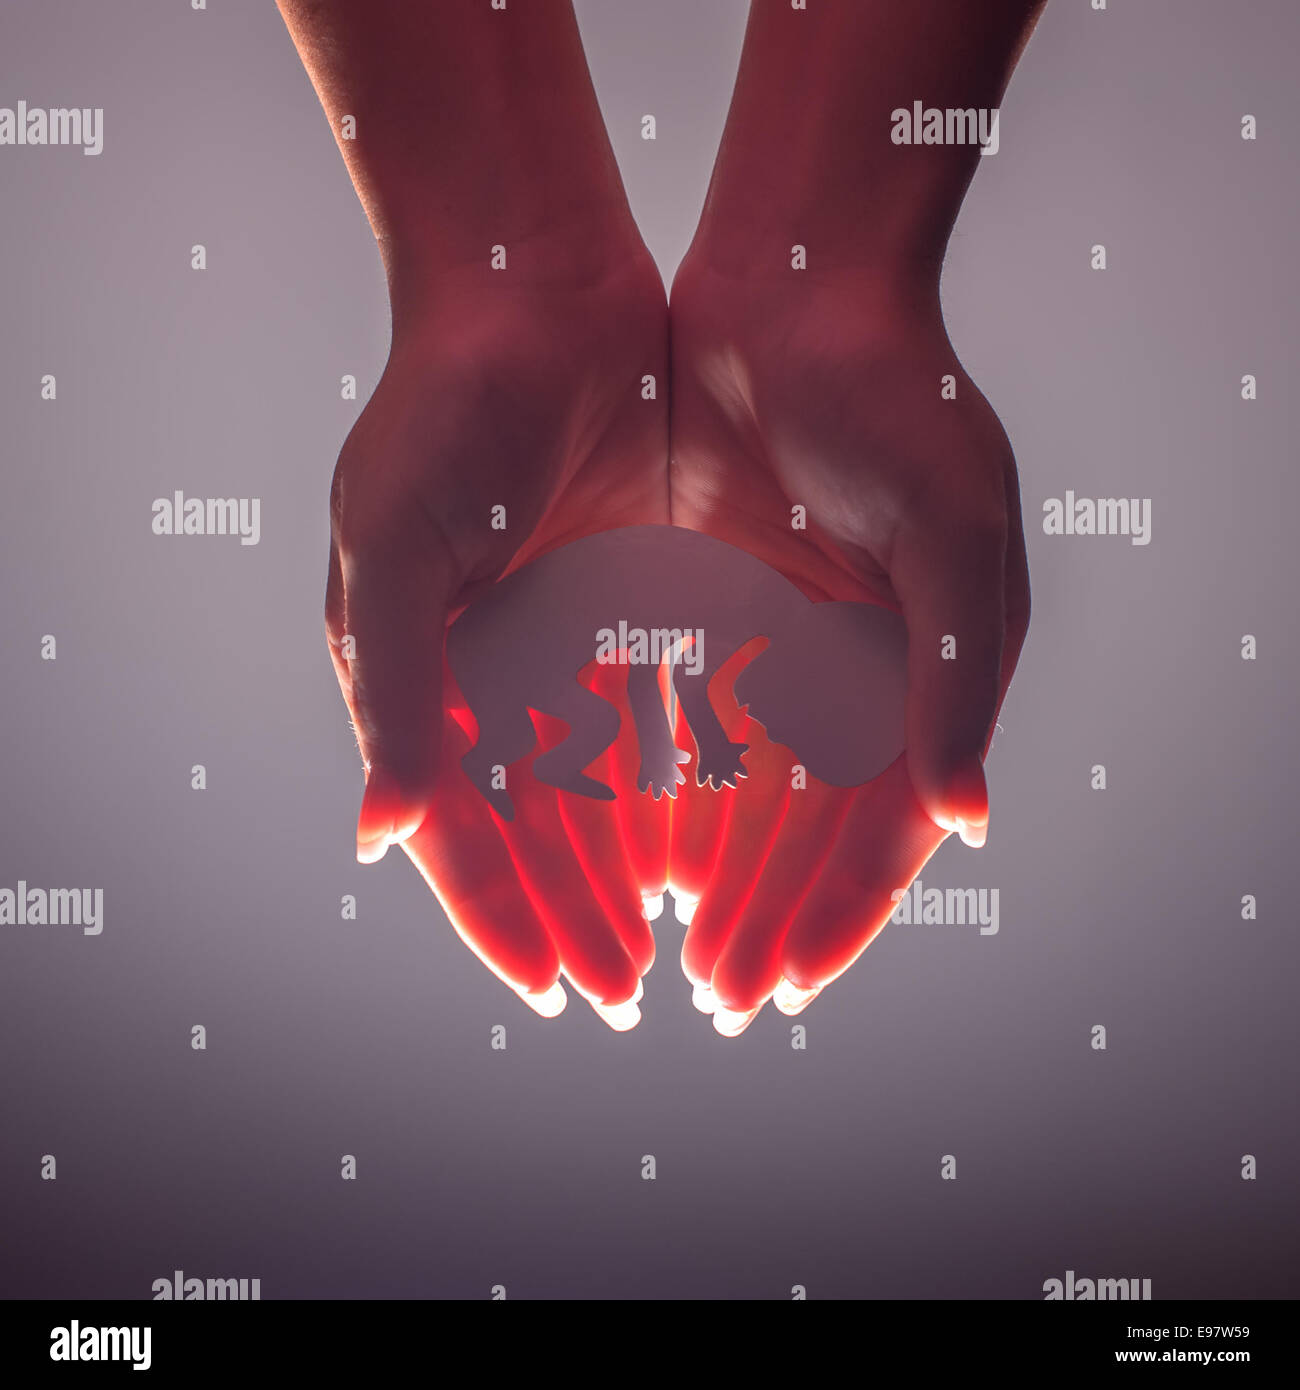 embryo silhouette in woman hand - Stock Image